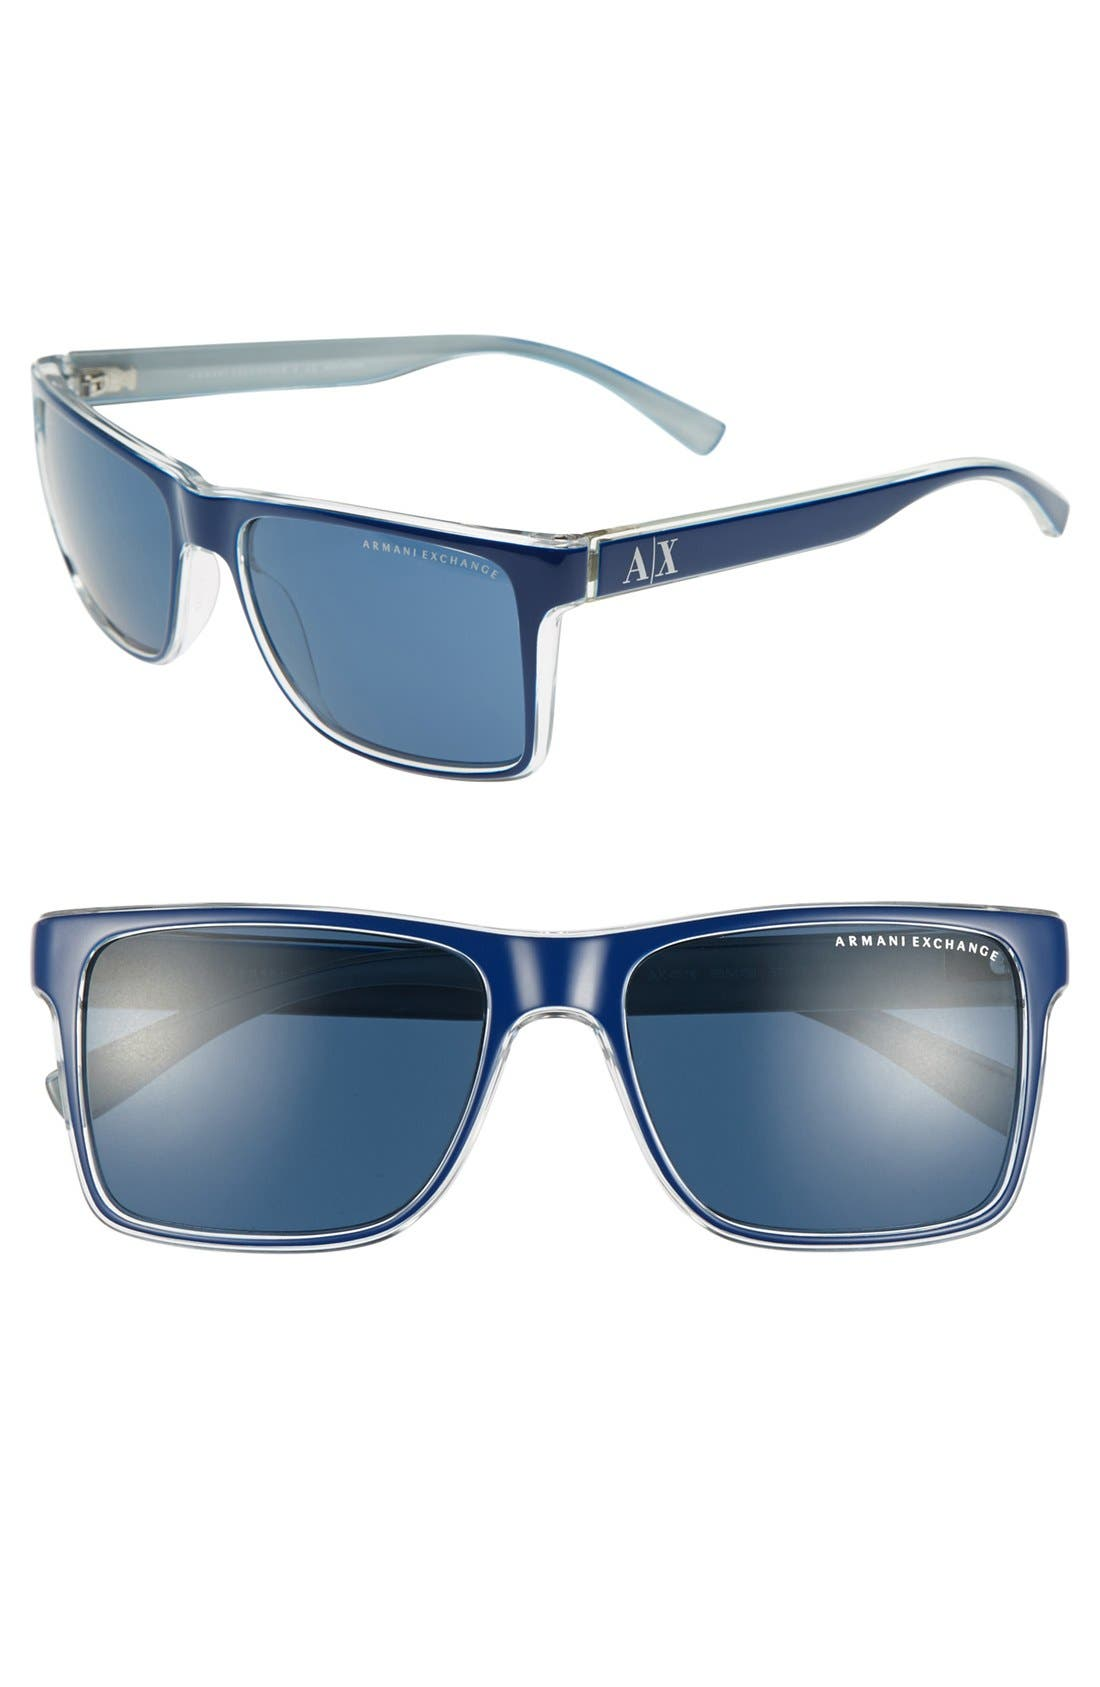 Alternate Image 1 Selected - AX Armani Exchange 'Forever Young' Square Logo 57mm Sunglasses